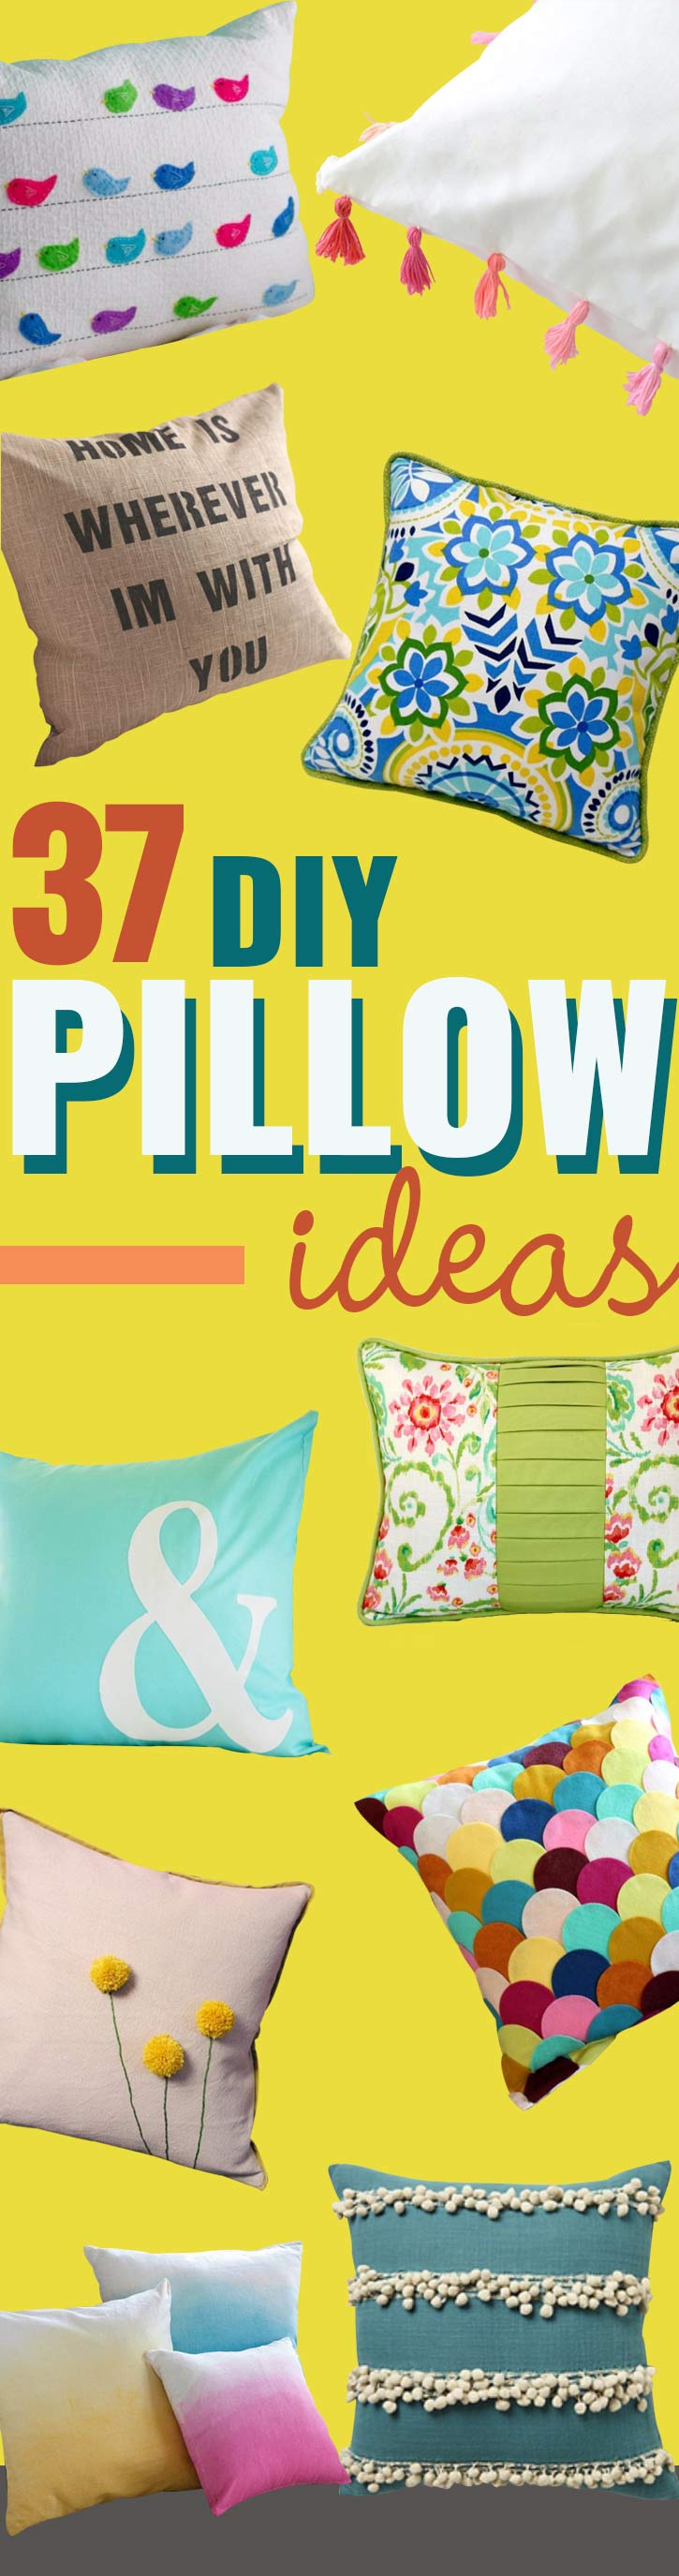 DIY Pillows and Creative Pillow Projects - Decorative Cases and Covers Throw Pillows Cute & 37 DIY Pillows That Will Upgrade Your Decor In Minutes - Page 4 of ... pillowsntoast.com